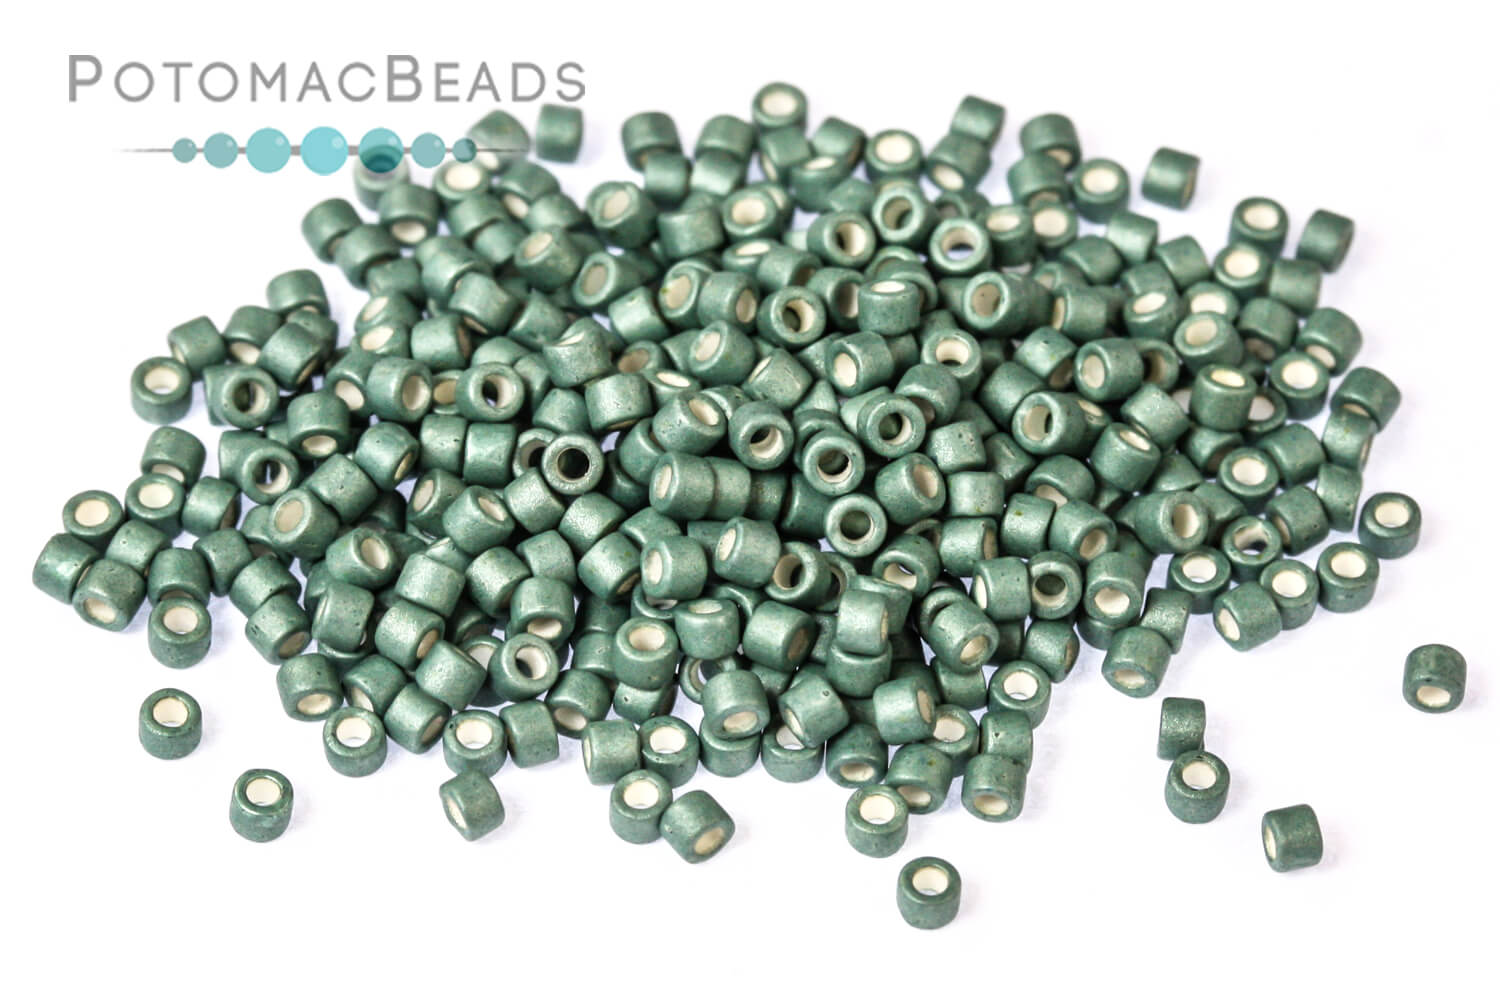 Seed Beads / Miyuki Delicas Beads / Delica Beads Size 11/0 - Matte Colors